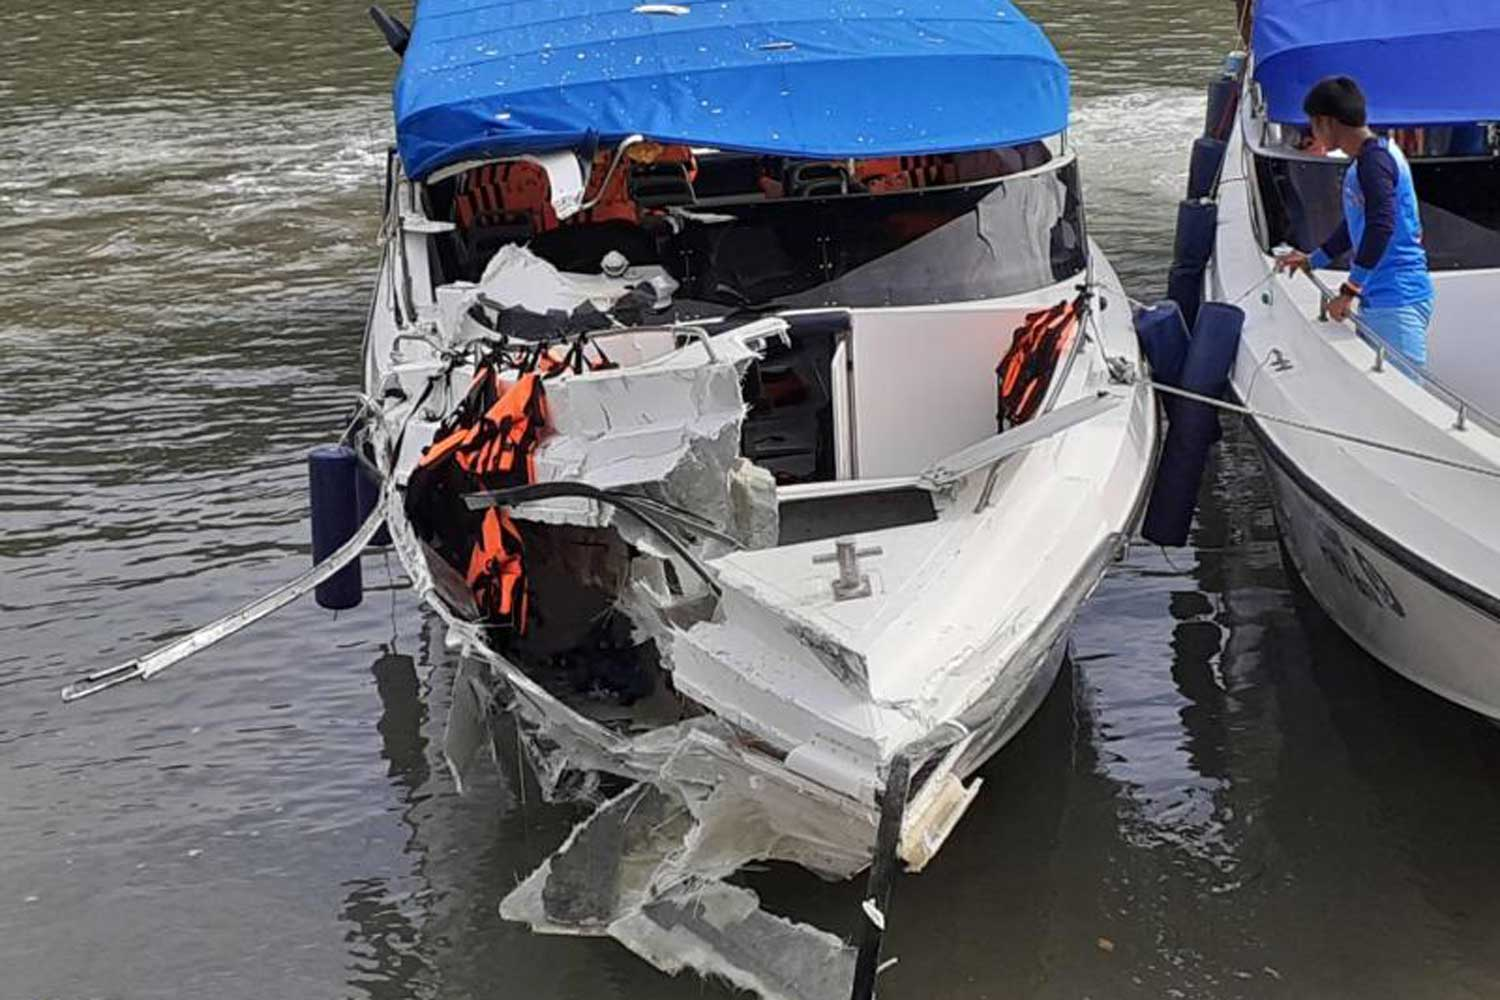 The badly damaged front section of SeaStar Co's 'Panan 5' is seen here after the speedboat collided with another vessel leaving a marina in Phuket on Monday. (Photo by Achadtaya Chuenniran)